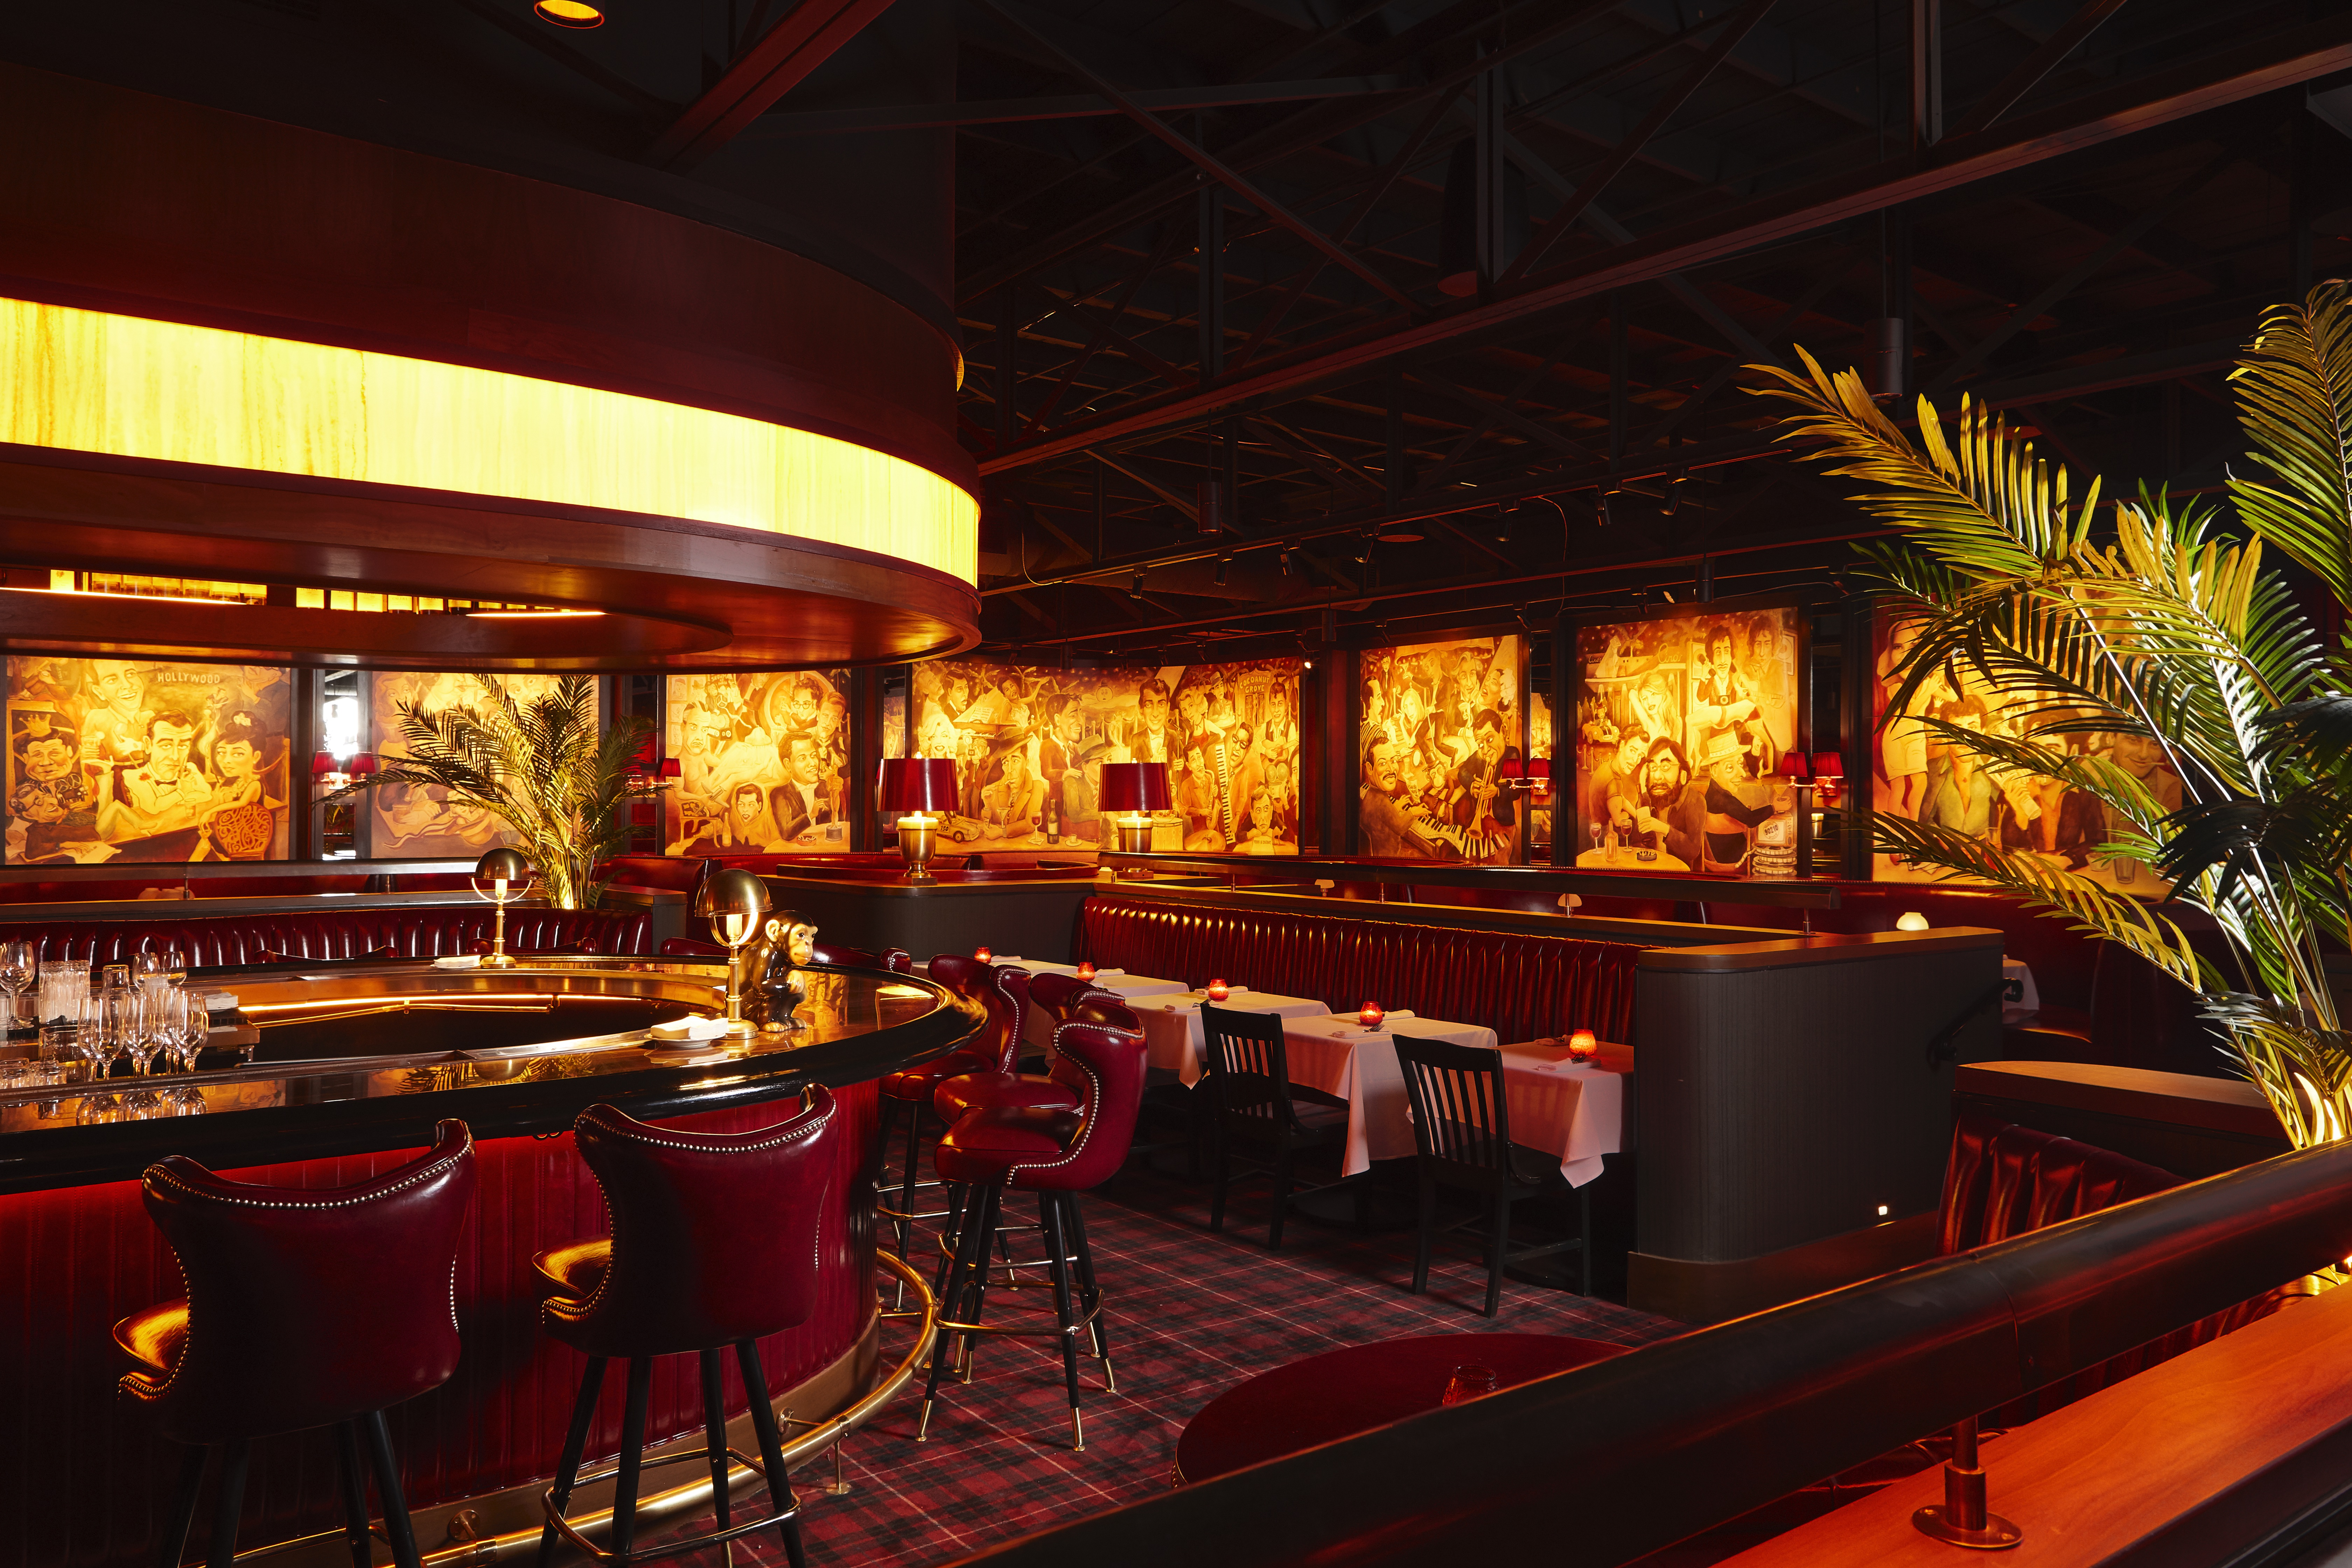 The dining room at Drake's features a round bar with dim lighting and red chairs.